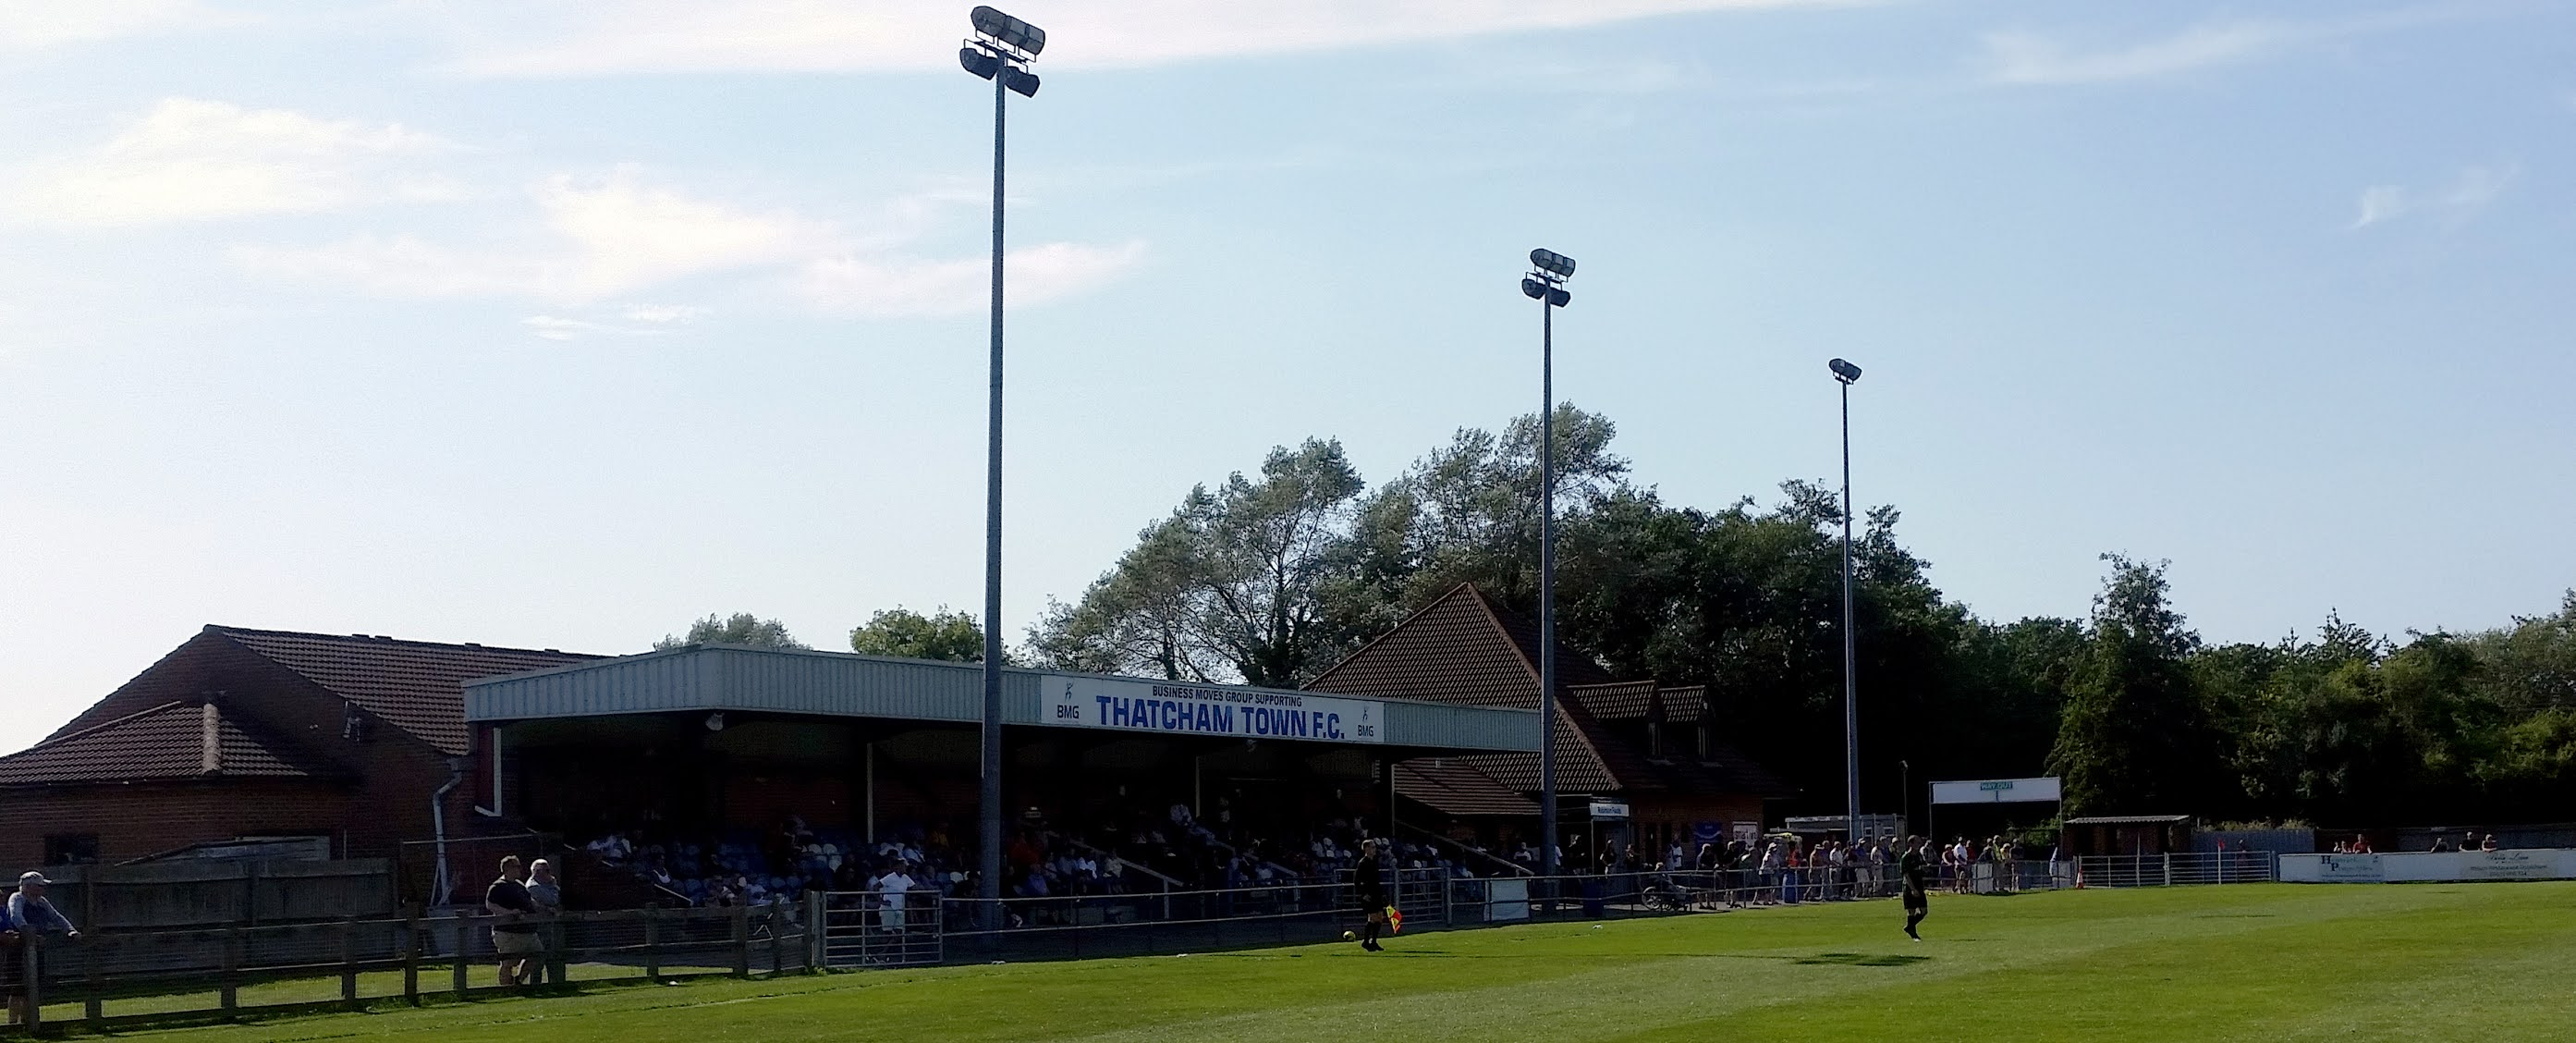 View of the main stand at the Stacatruc Stadium in Thatcham